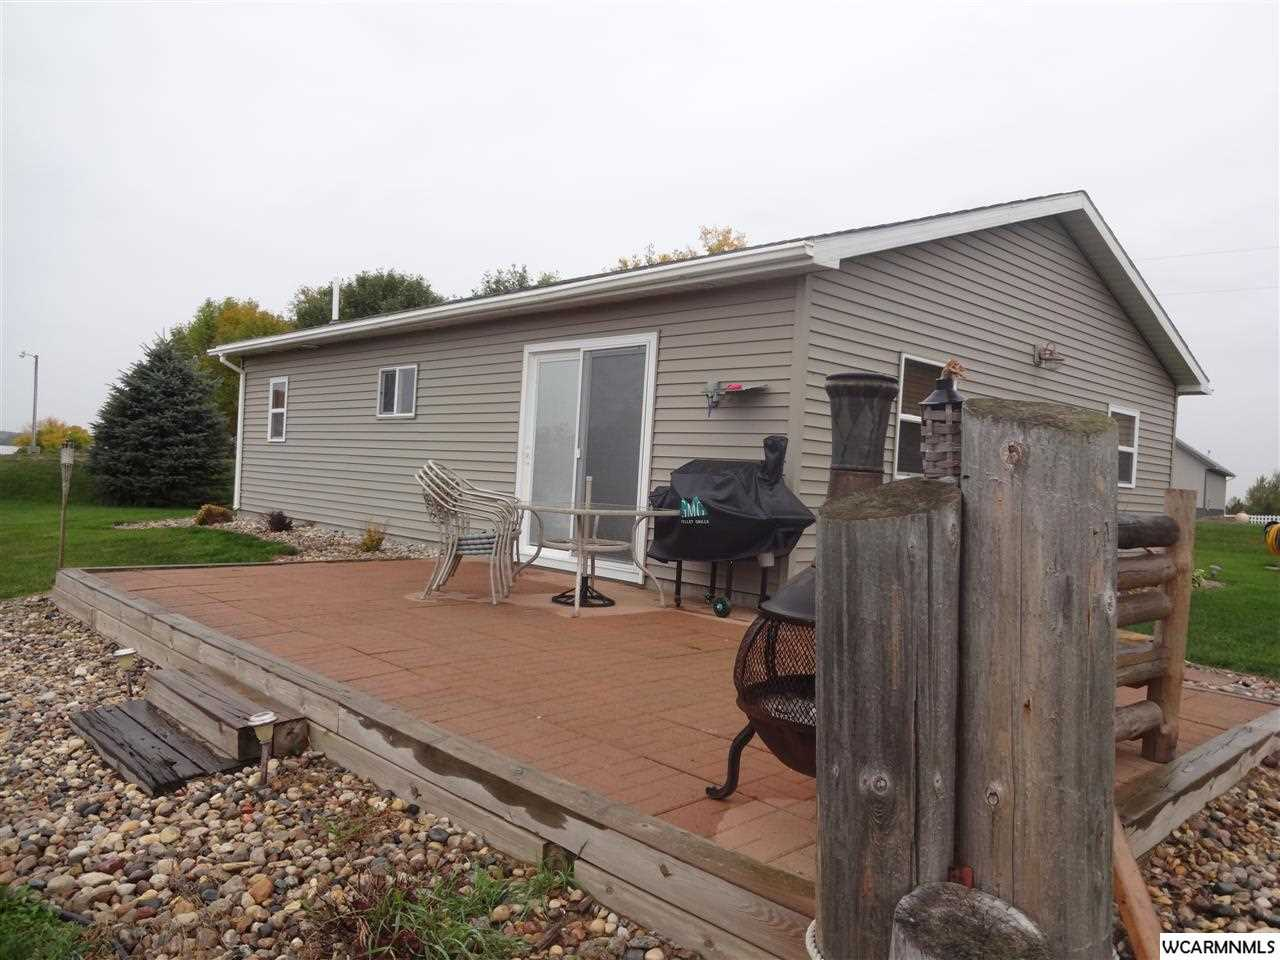 heron lake dating Allagash history dating from the 1920s a temporary tractor bridge existed across the natural course of the river at its outlet from heron lake.